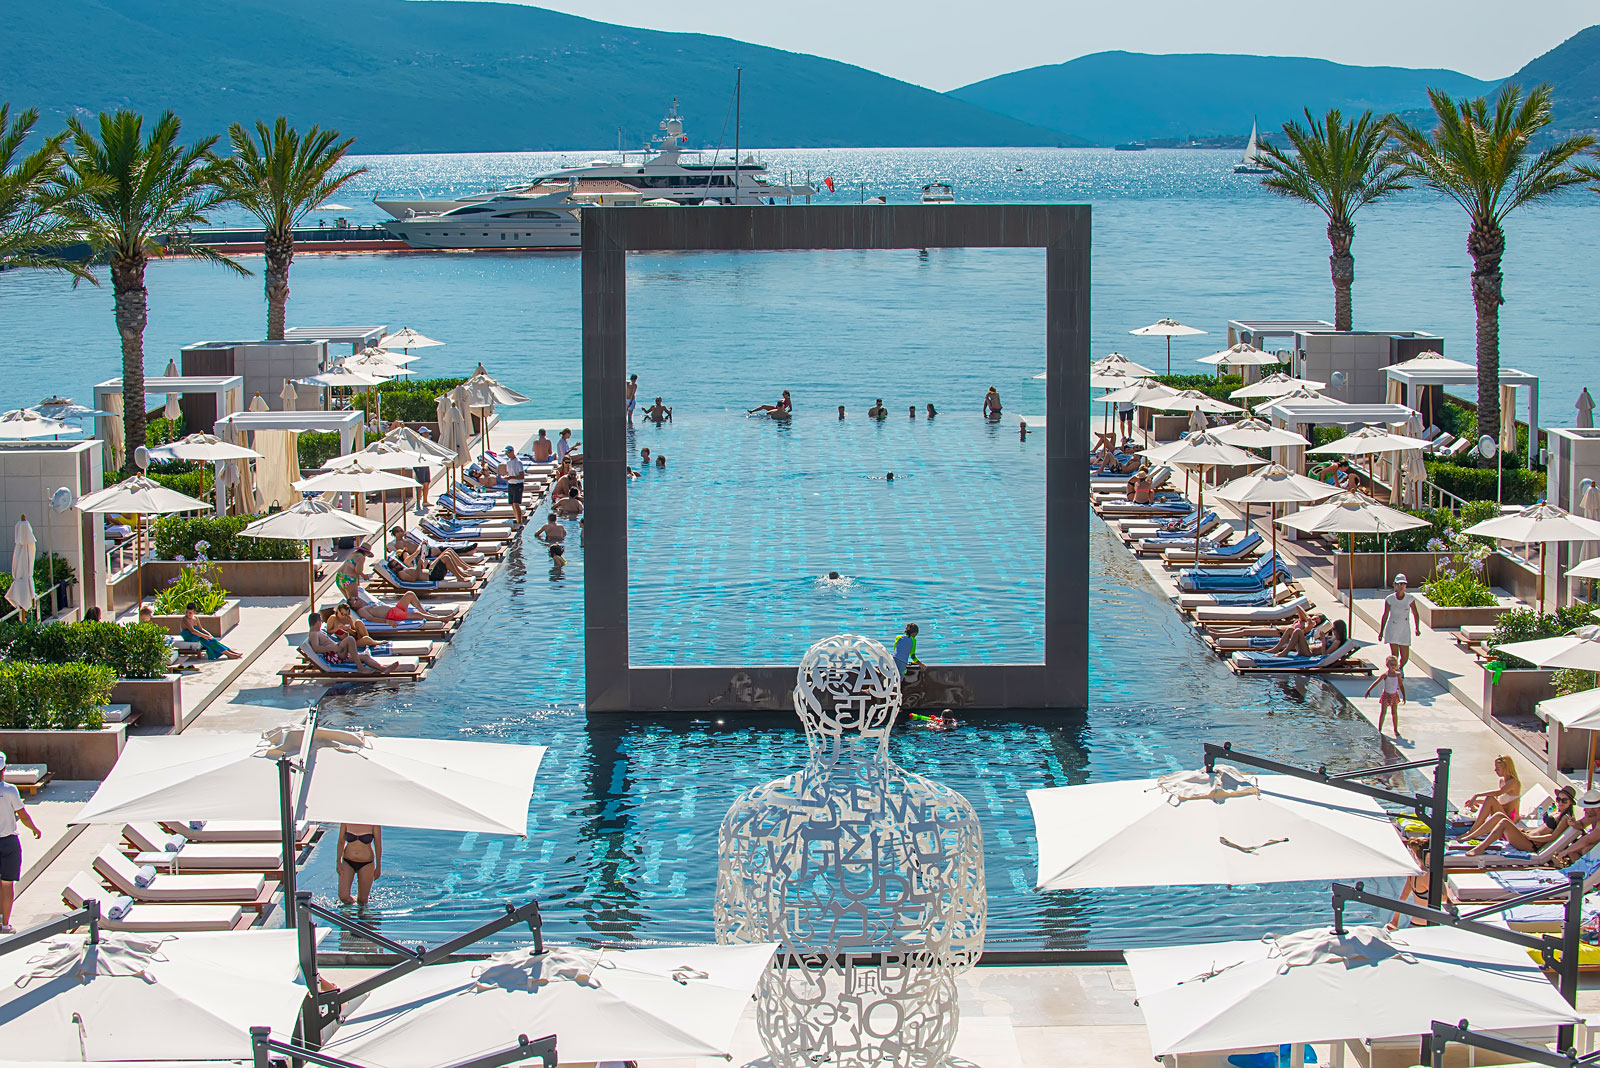 Porto Montenegro Yacht Club Pool is acknowledged with an award by the World's Finest Clubs®